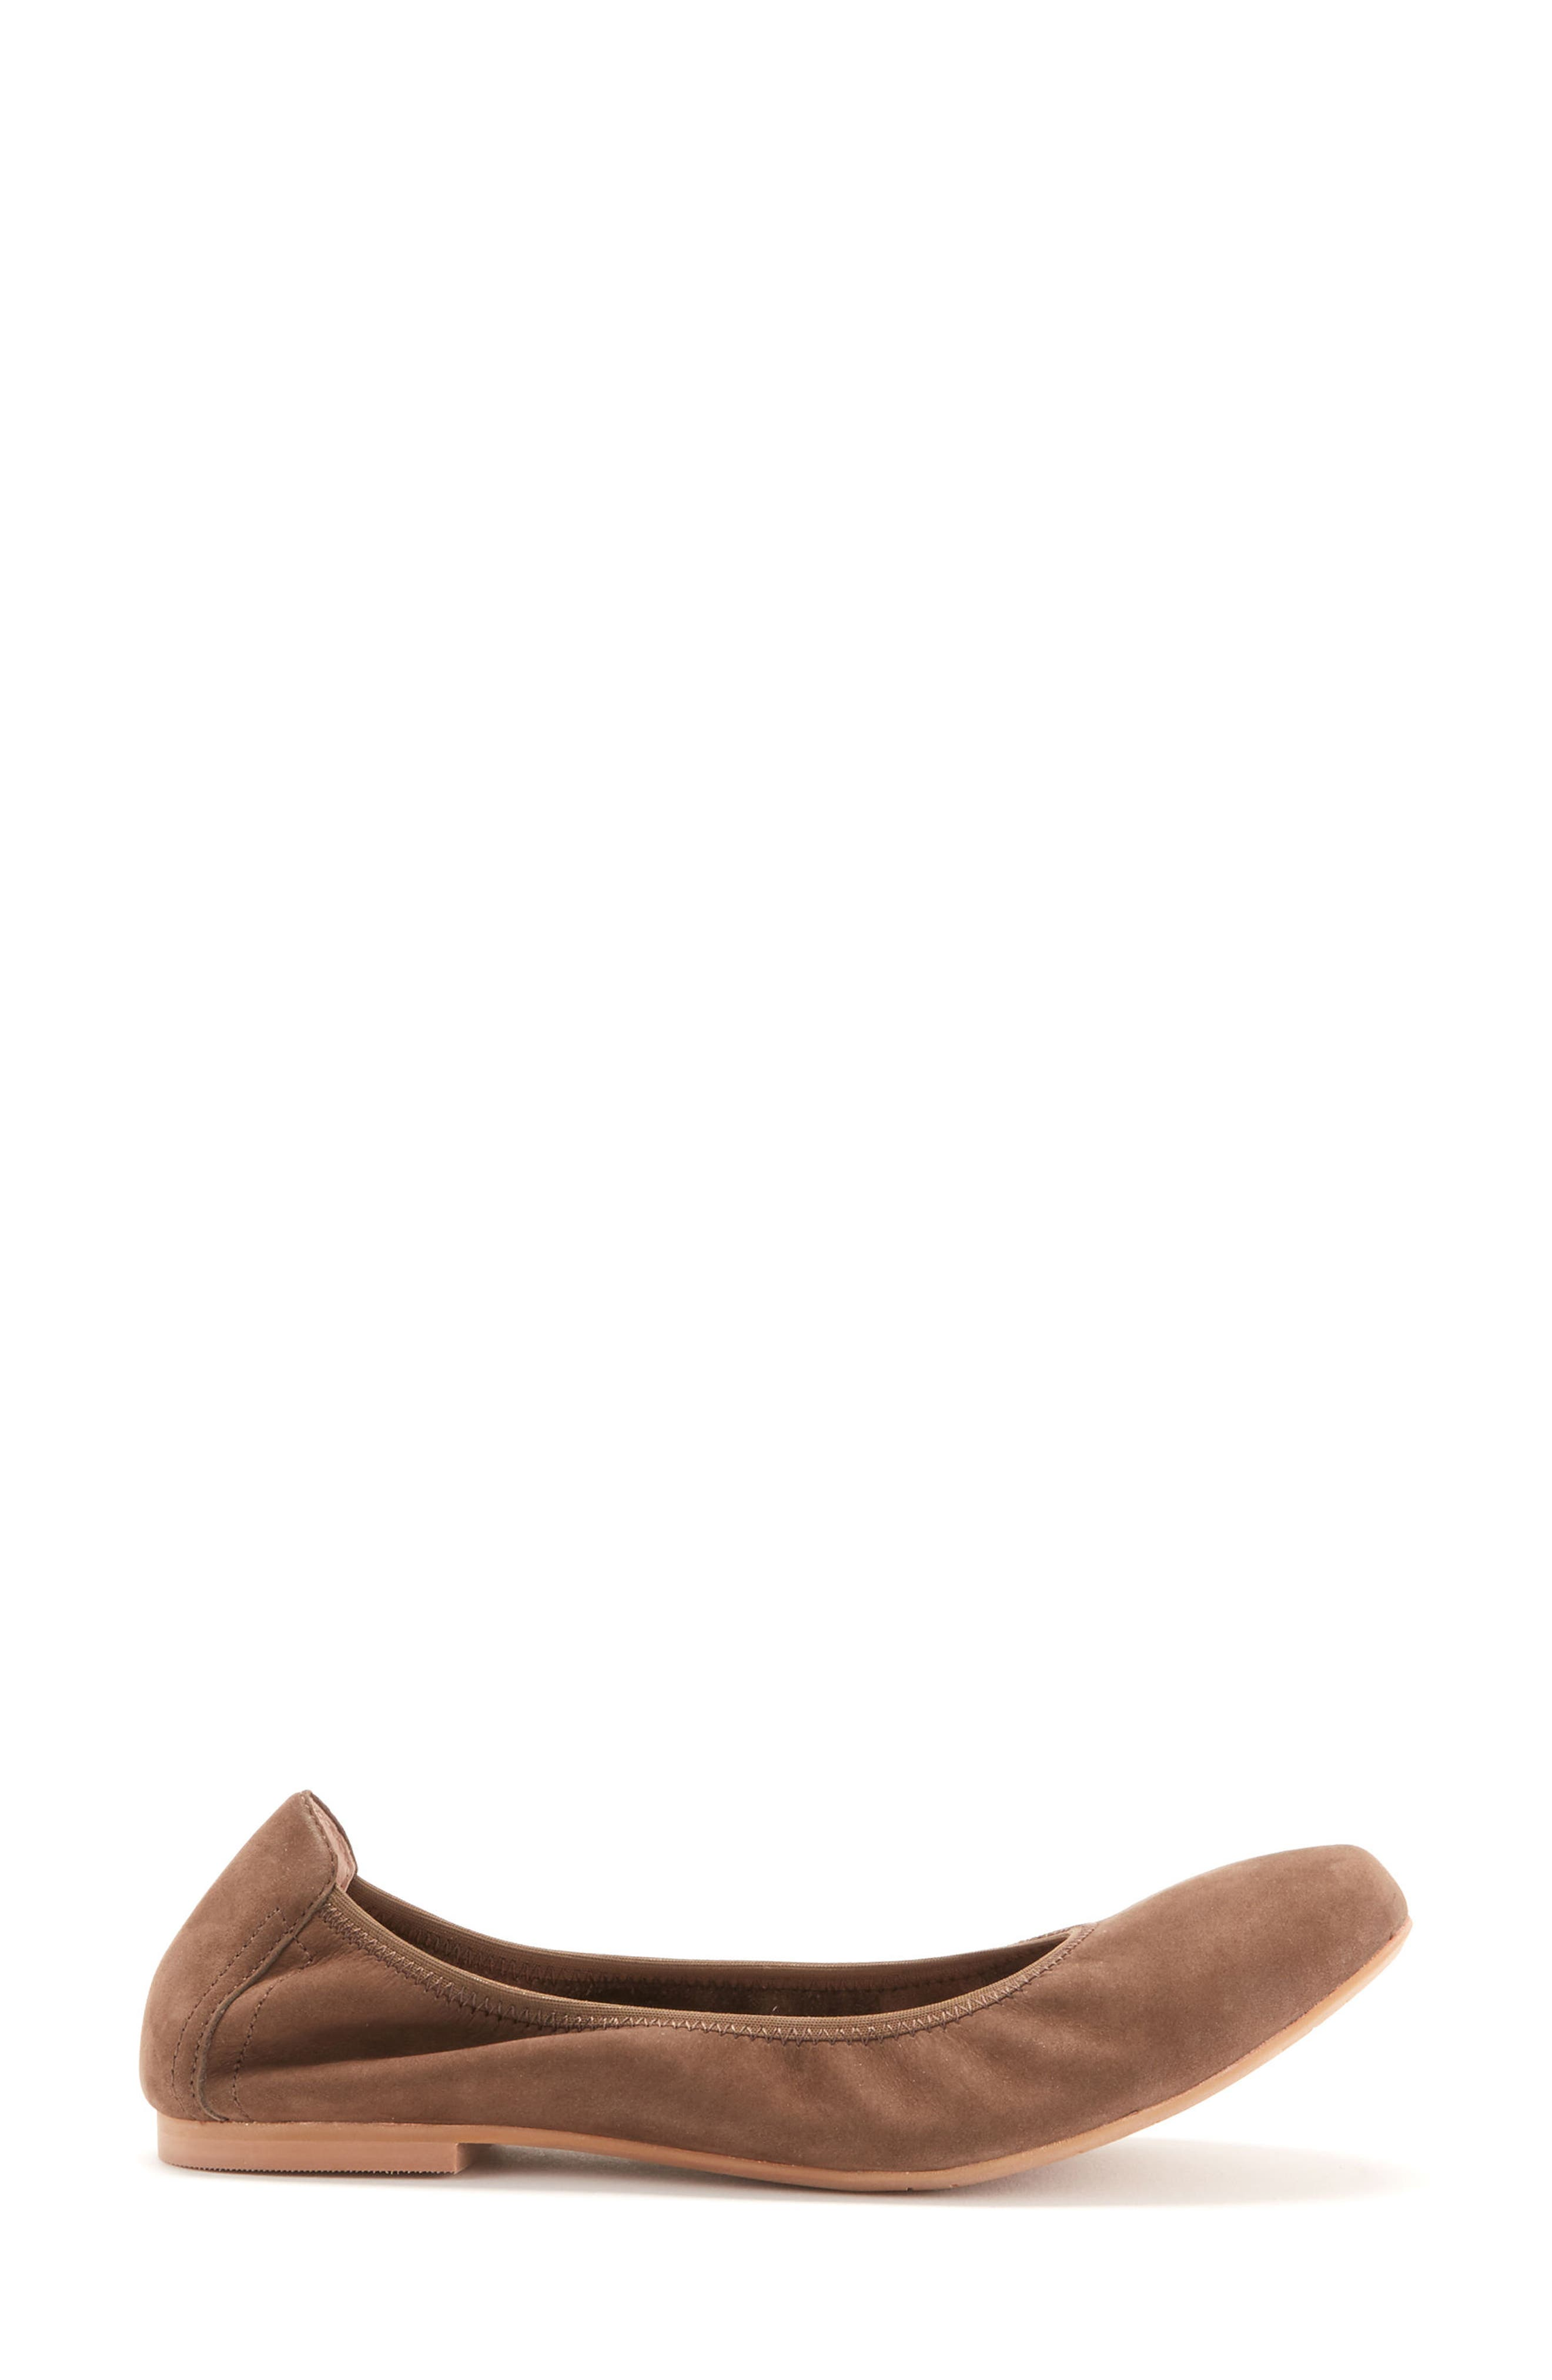 Becca Waterproof Flat,                             Alternate thumbnail 3, color,                             Taupe Nubuck Leather